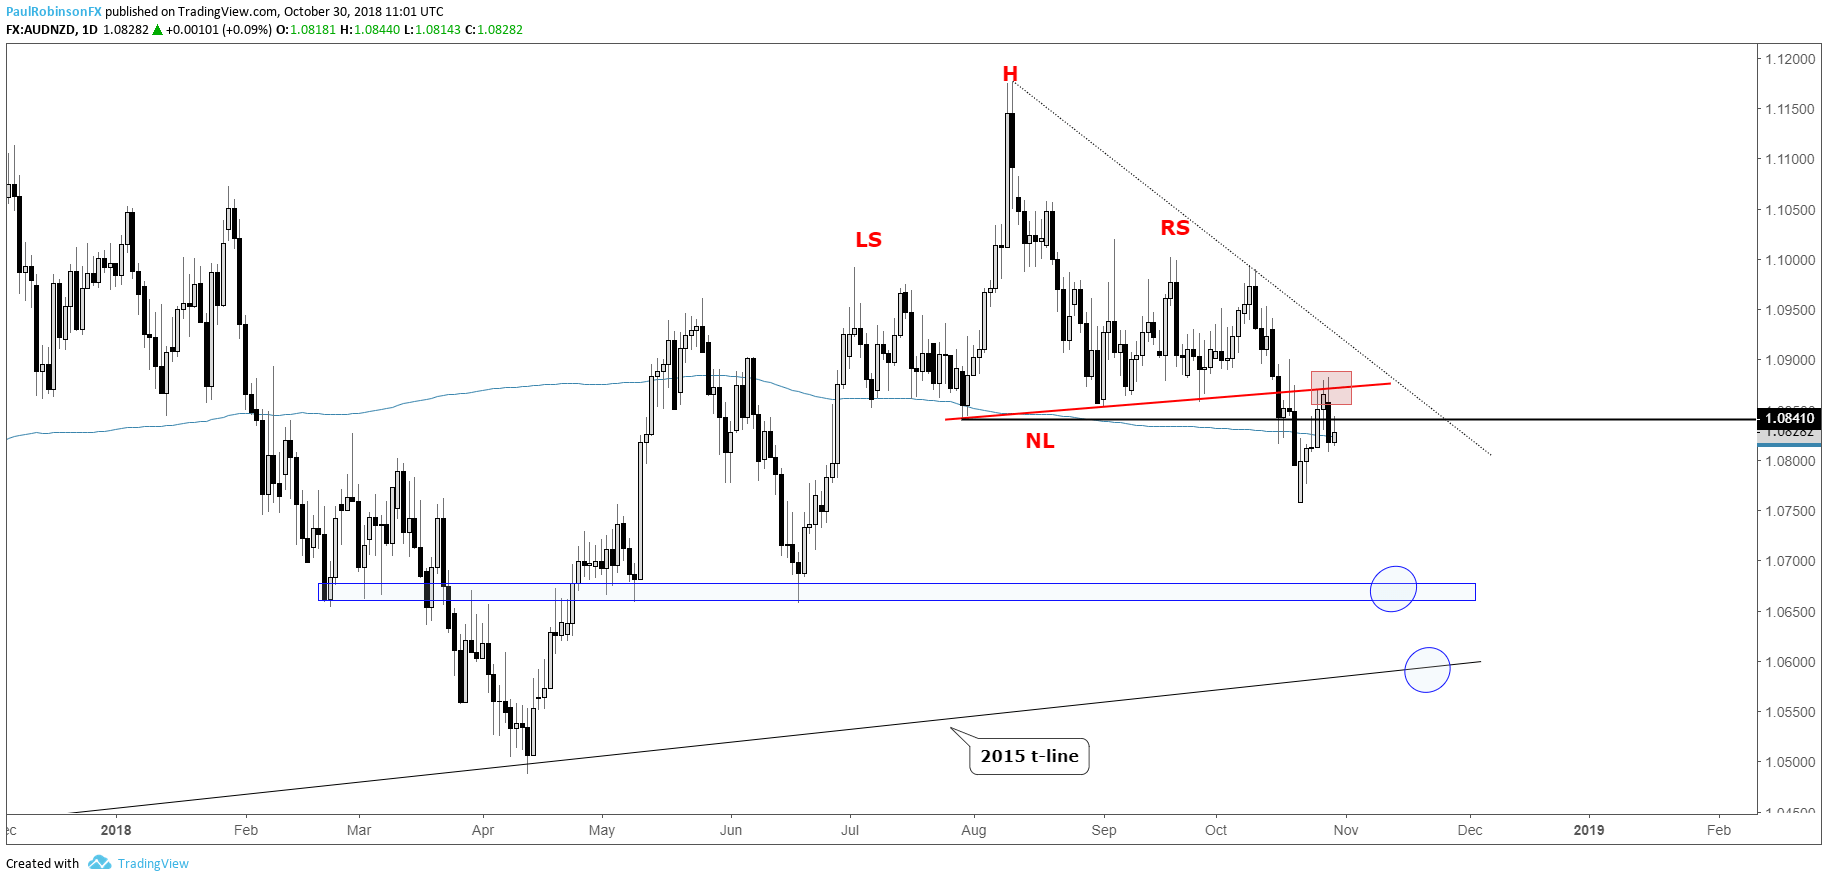 Technical Outlook For Usd Index Eur Usd Aud Nzd Gold